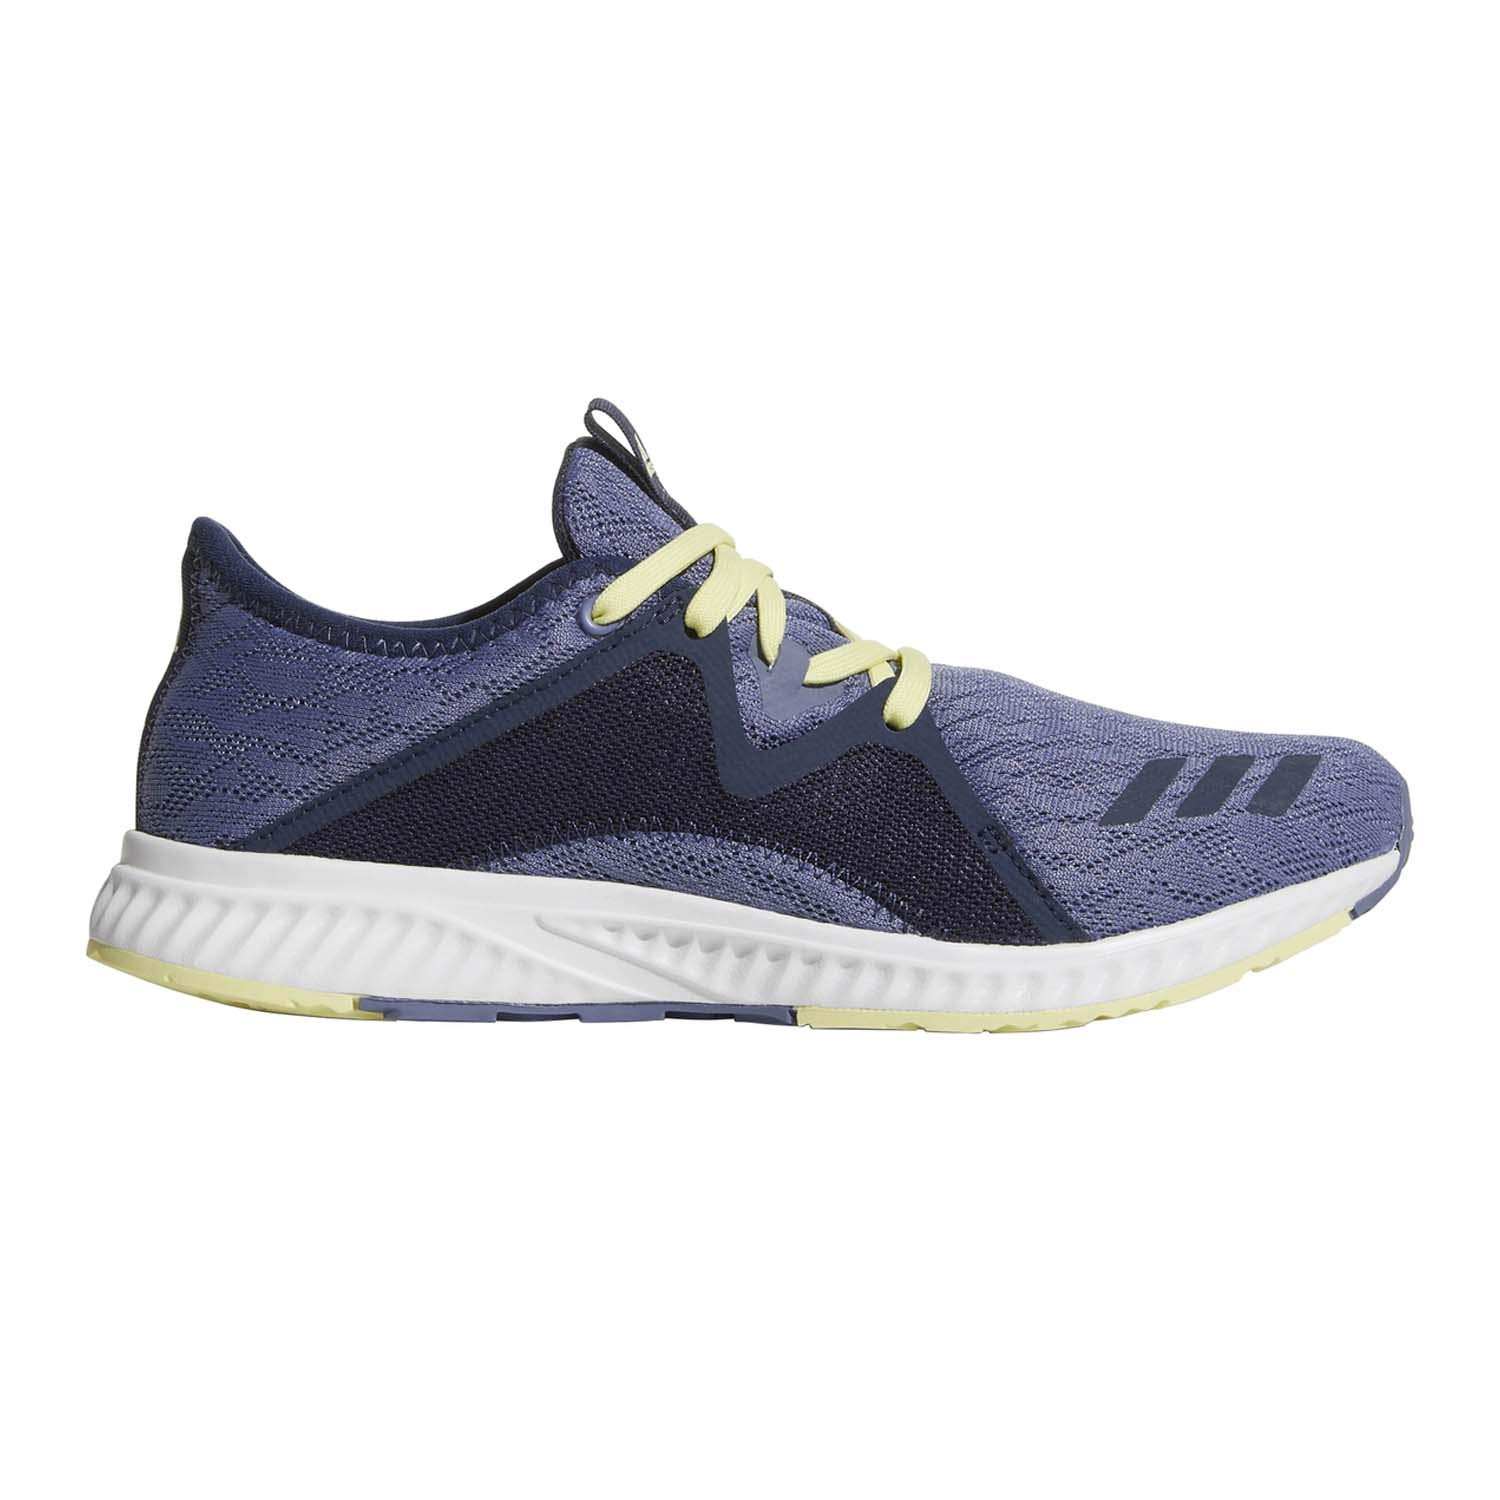 Galleon - Adidas Edge Lux 2.0 Shoe Women s Running 6 Purple-Trace Blue-Ice  Yellow ea300dcf2